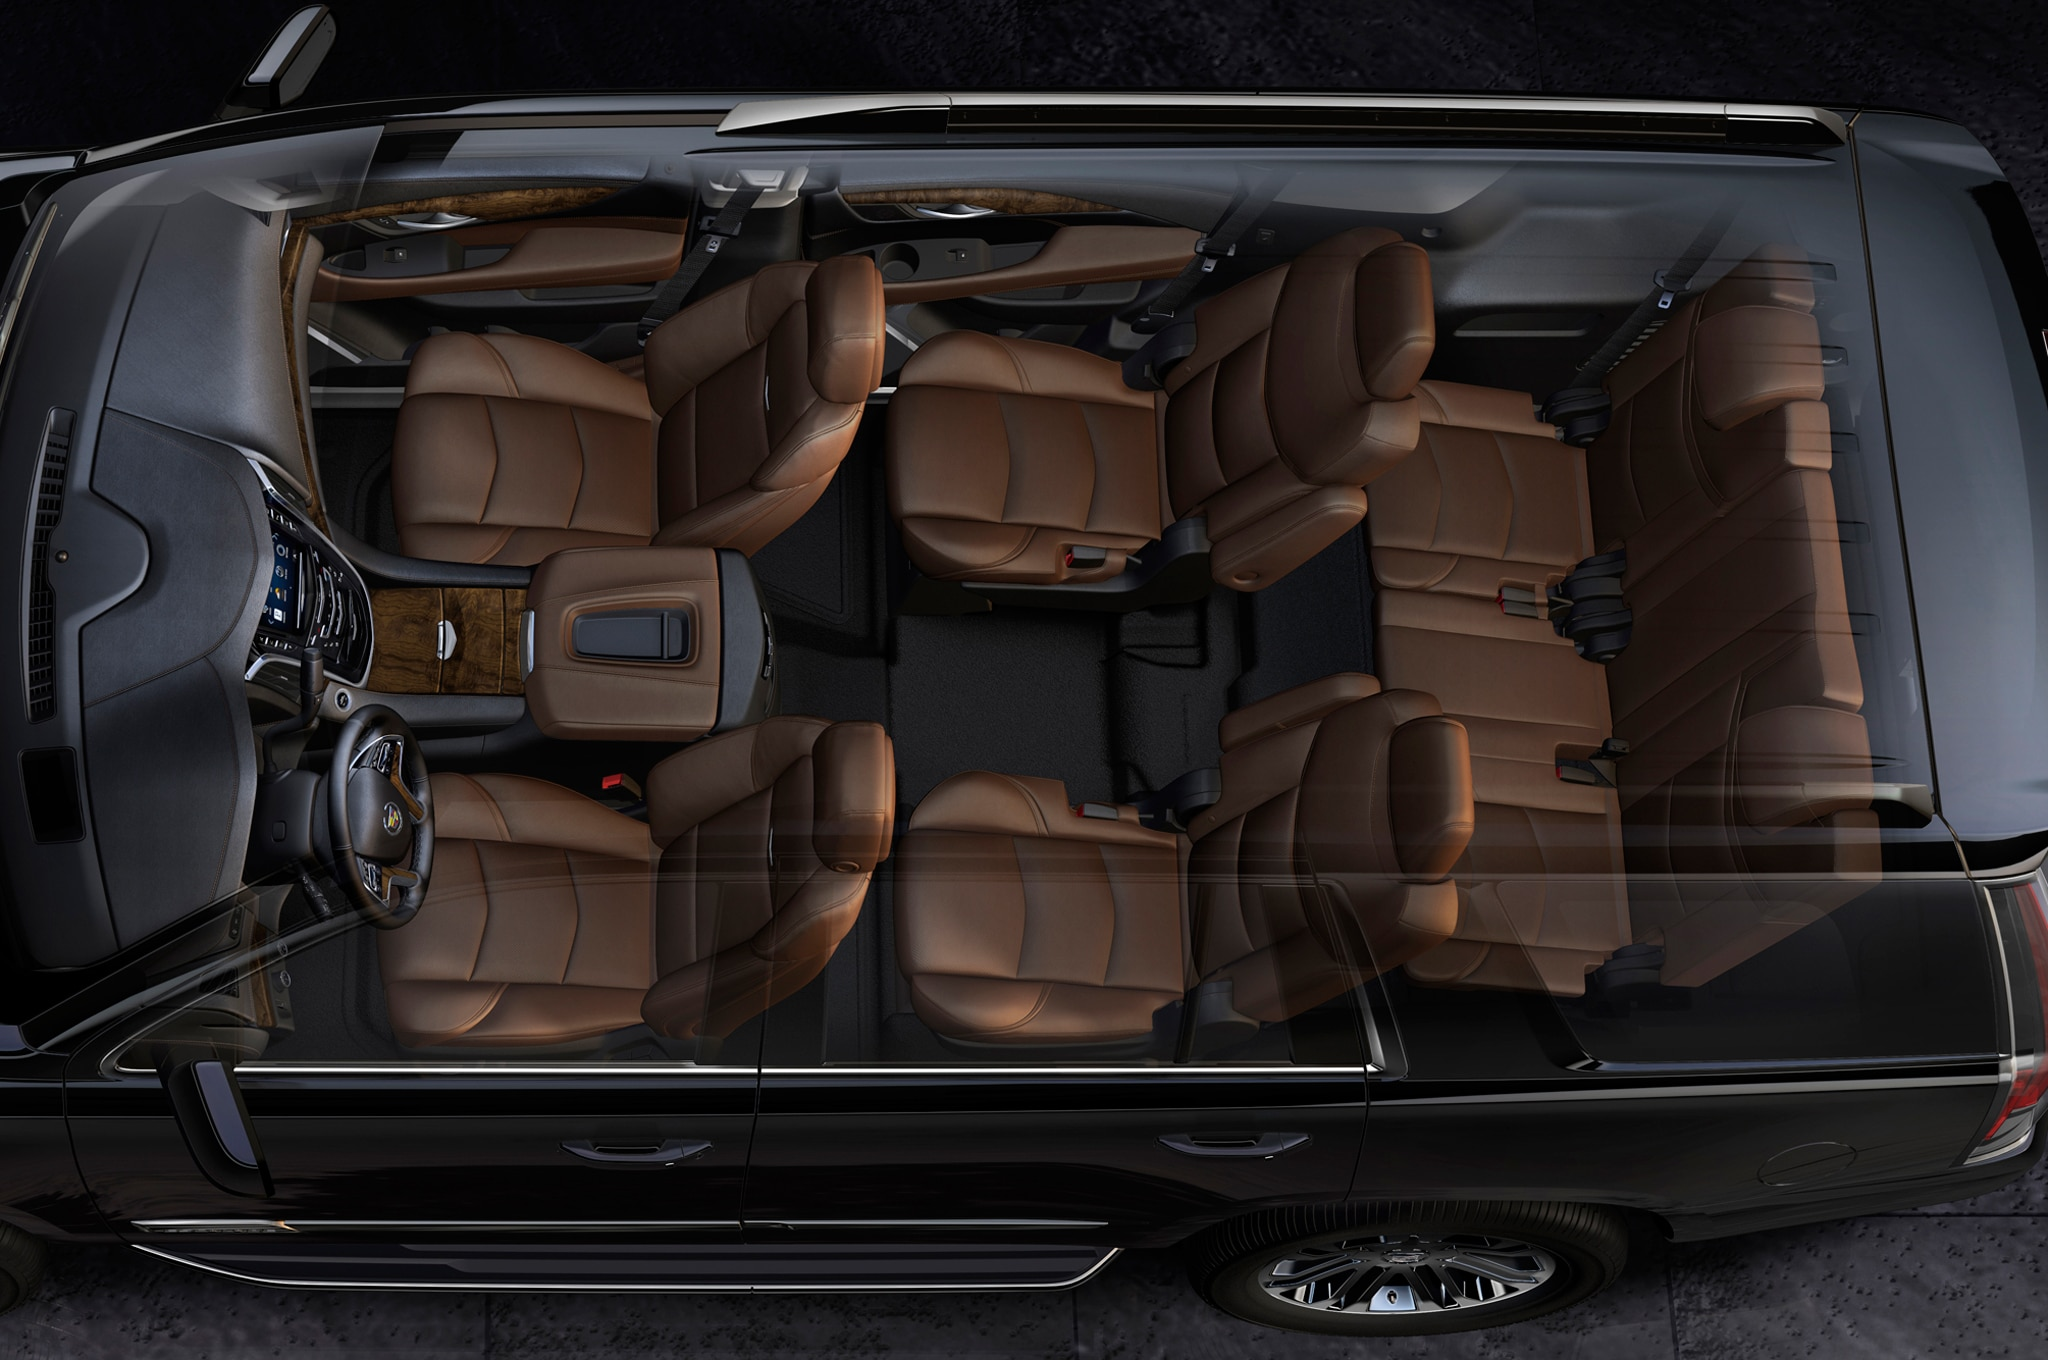 2015 Cadillac Escalade interior view